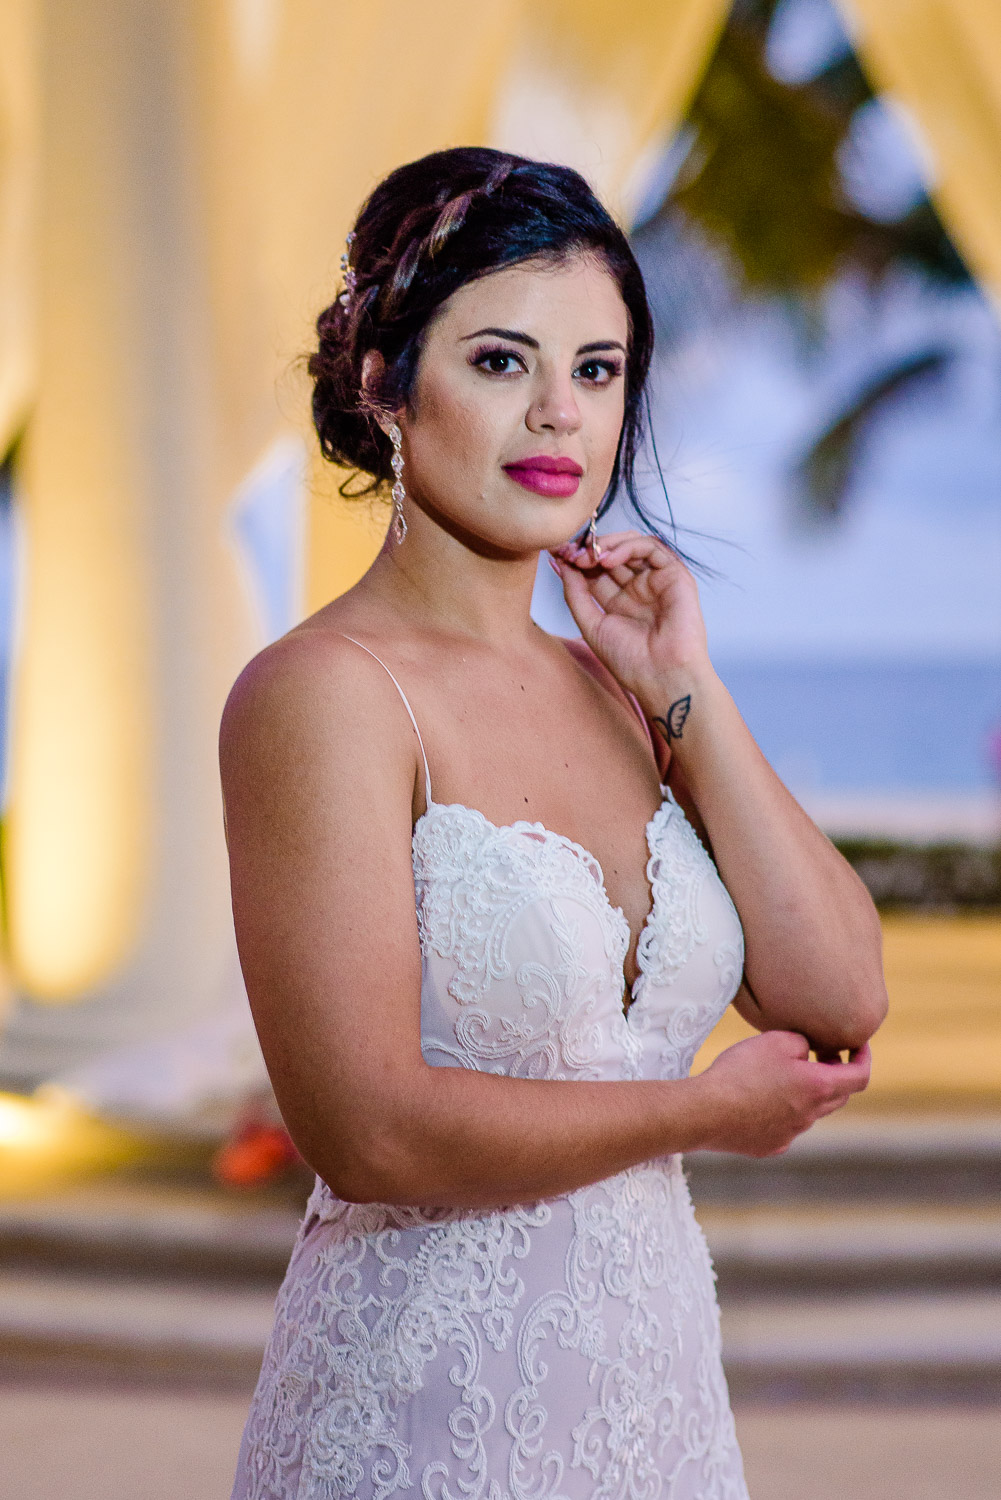 Los-Cabos-Wedding-41.JPG